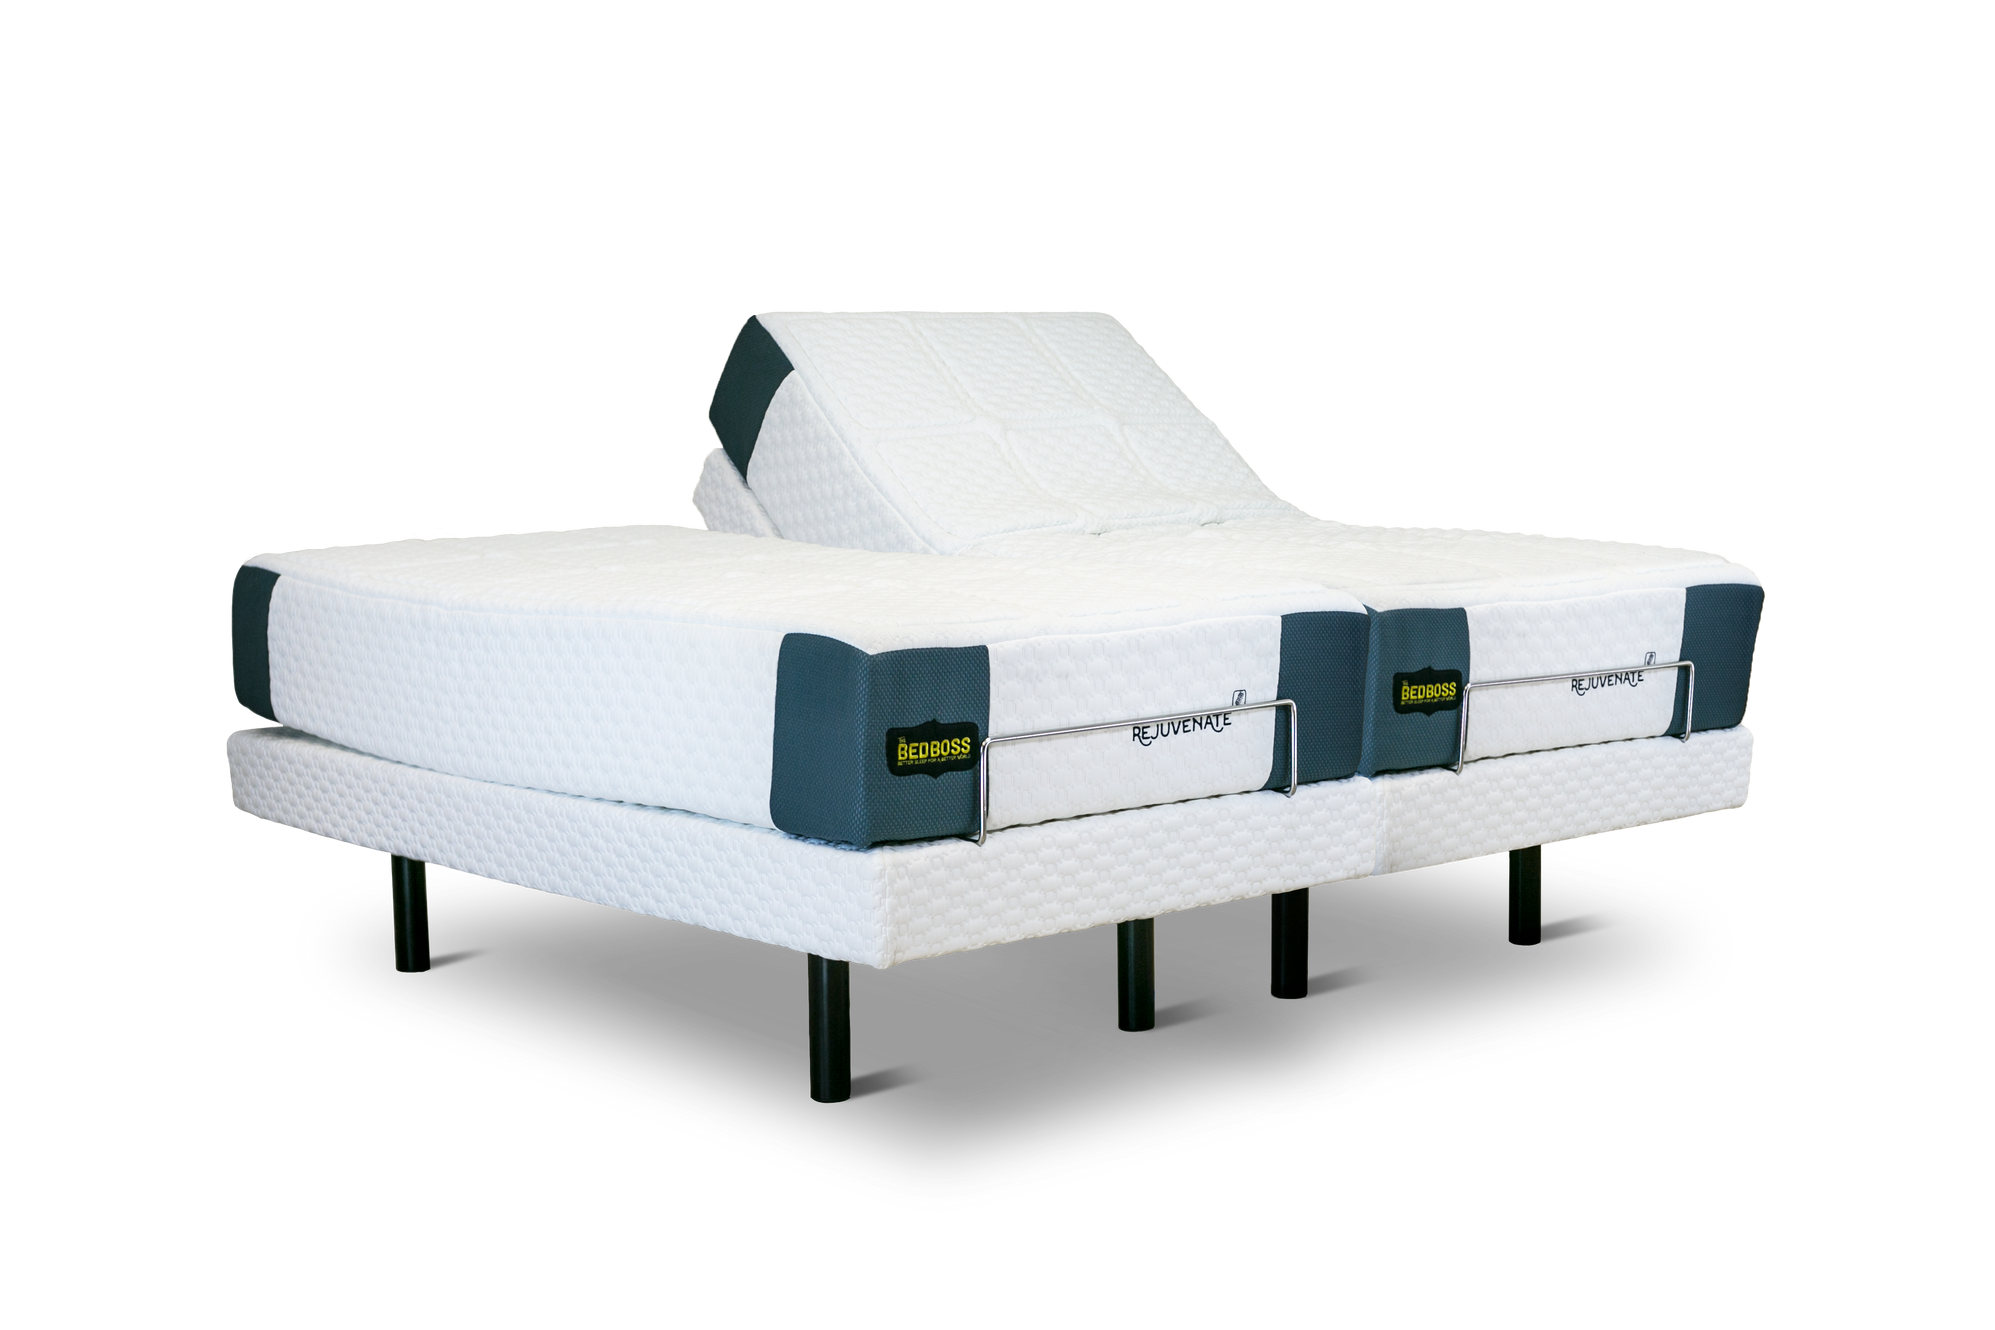 Chattanooga Mattress Store   United States   The Bed Boss